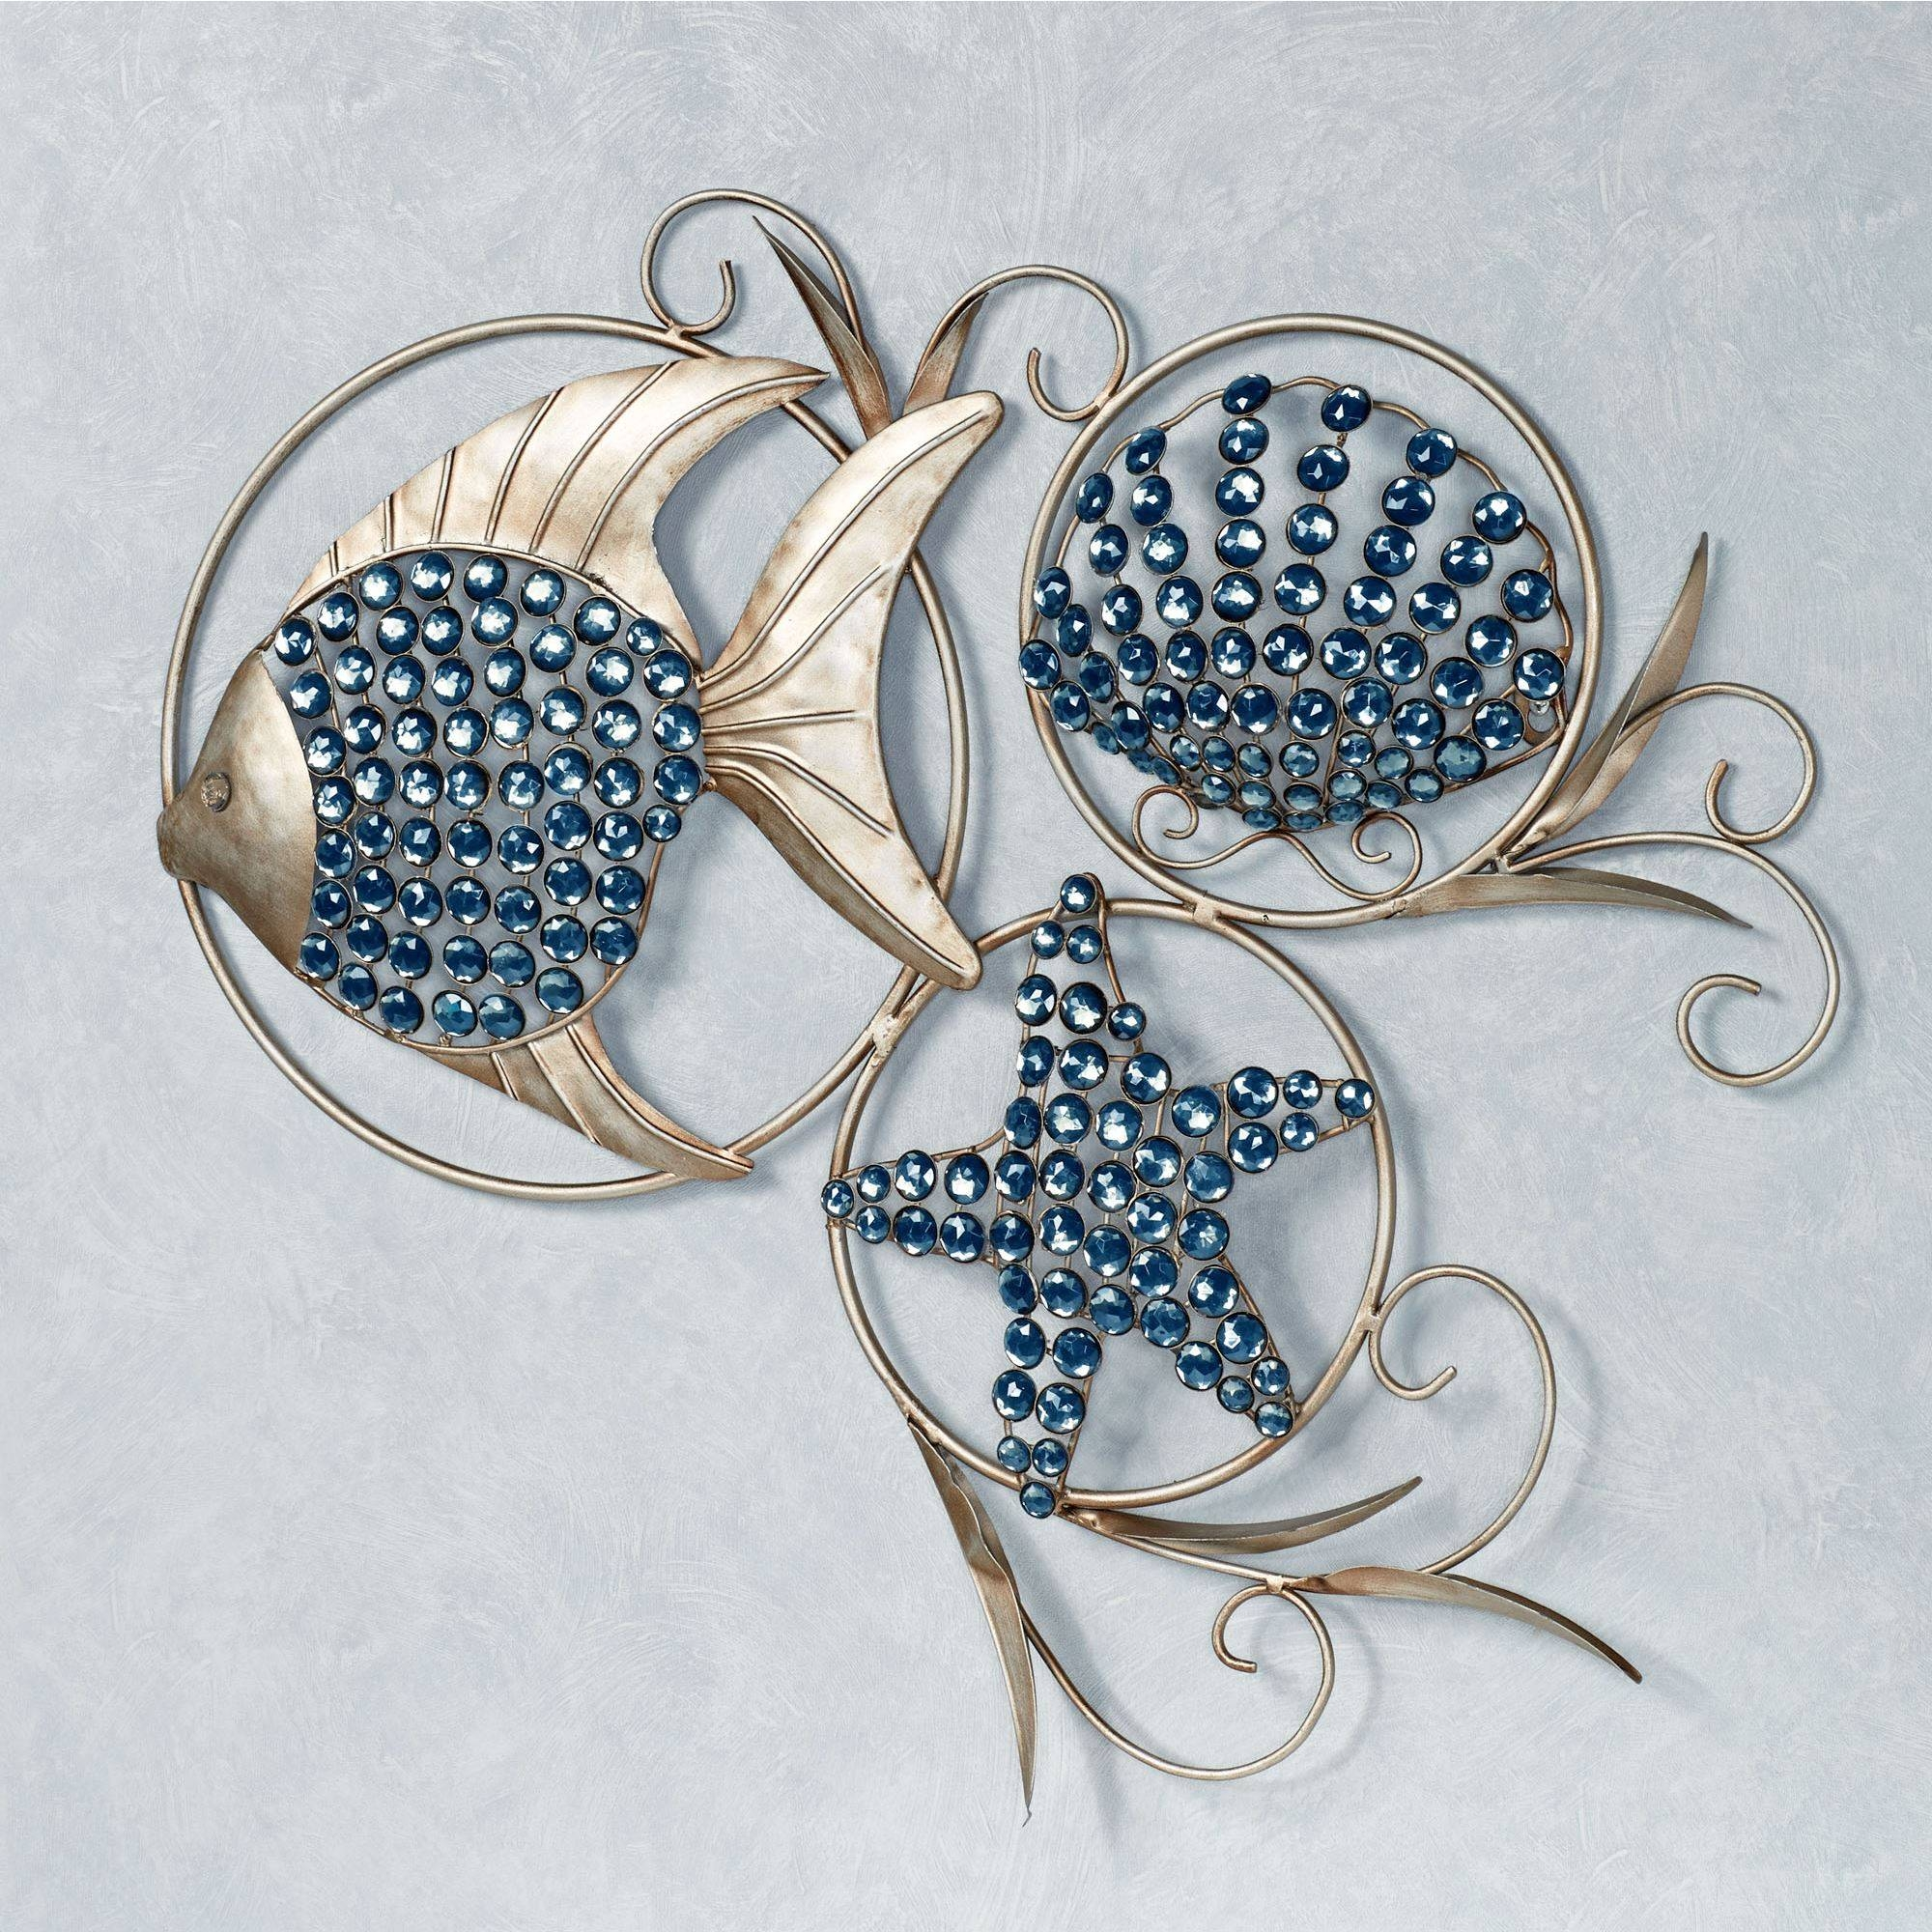 Ocean Gems Fish And Seashell Metal Wall Art Intended For 2018 Seahorse Metal Wall Art (Gallery 6 of 20)